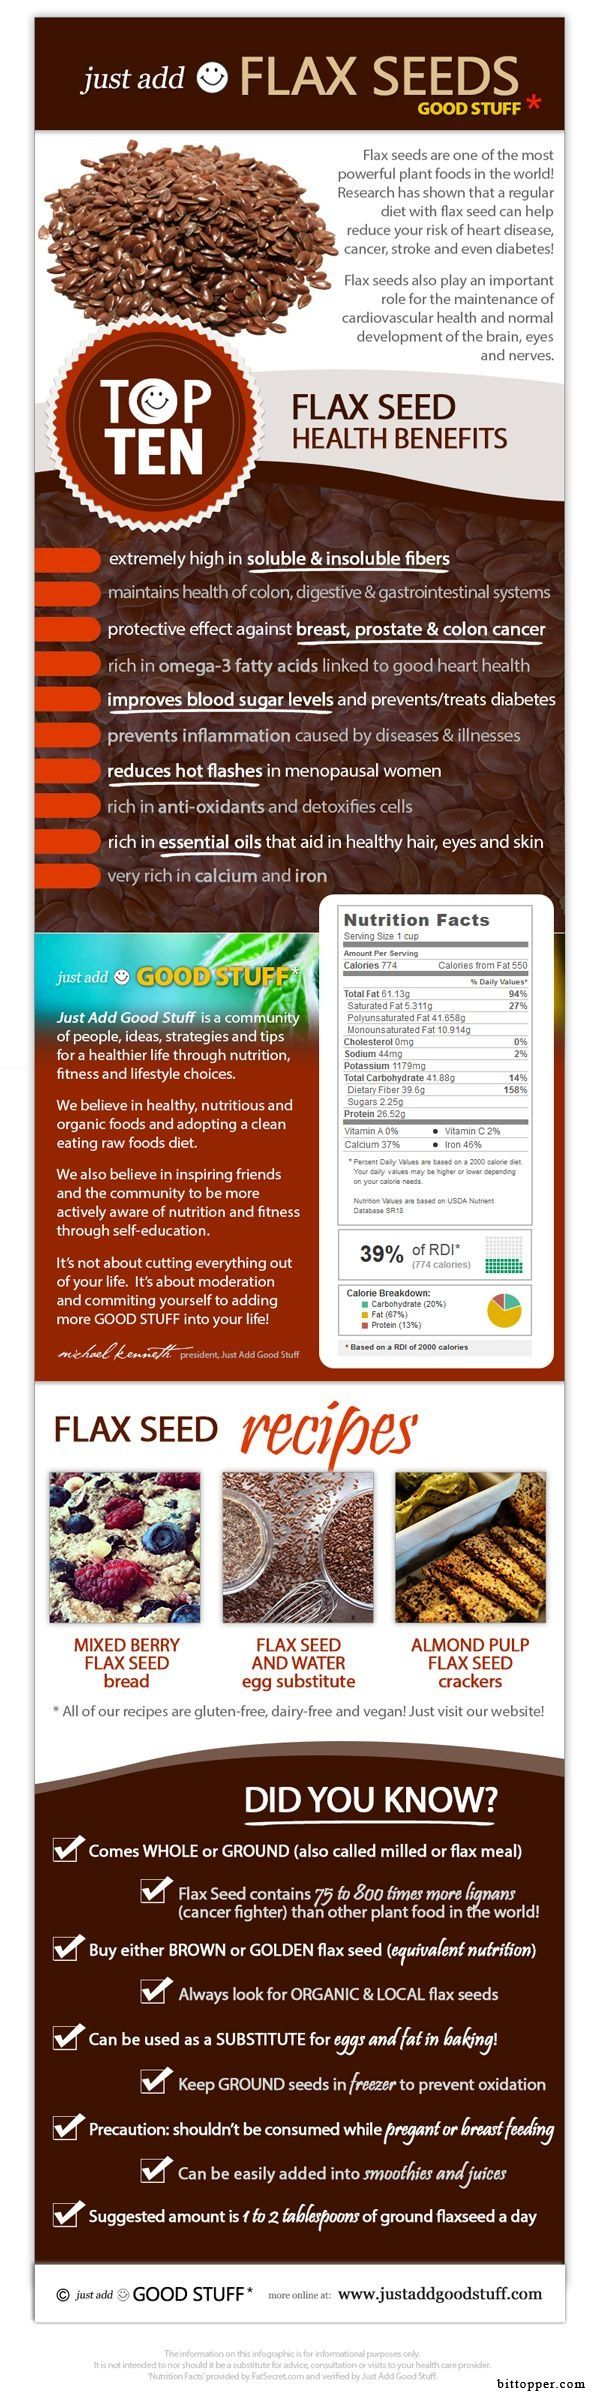 FLAX INFOGRAPHIC > Top health benefits of flaxseed including nutritional data, flax seed recipes and interesting facts